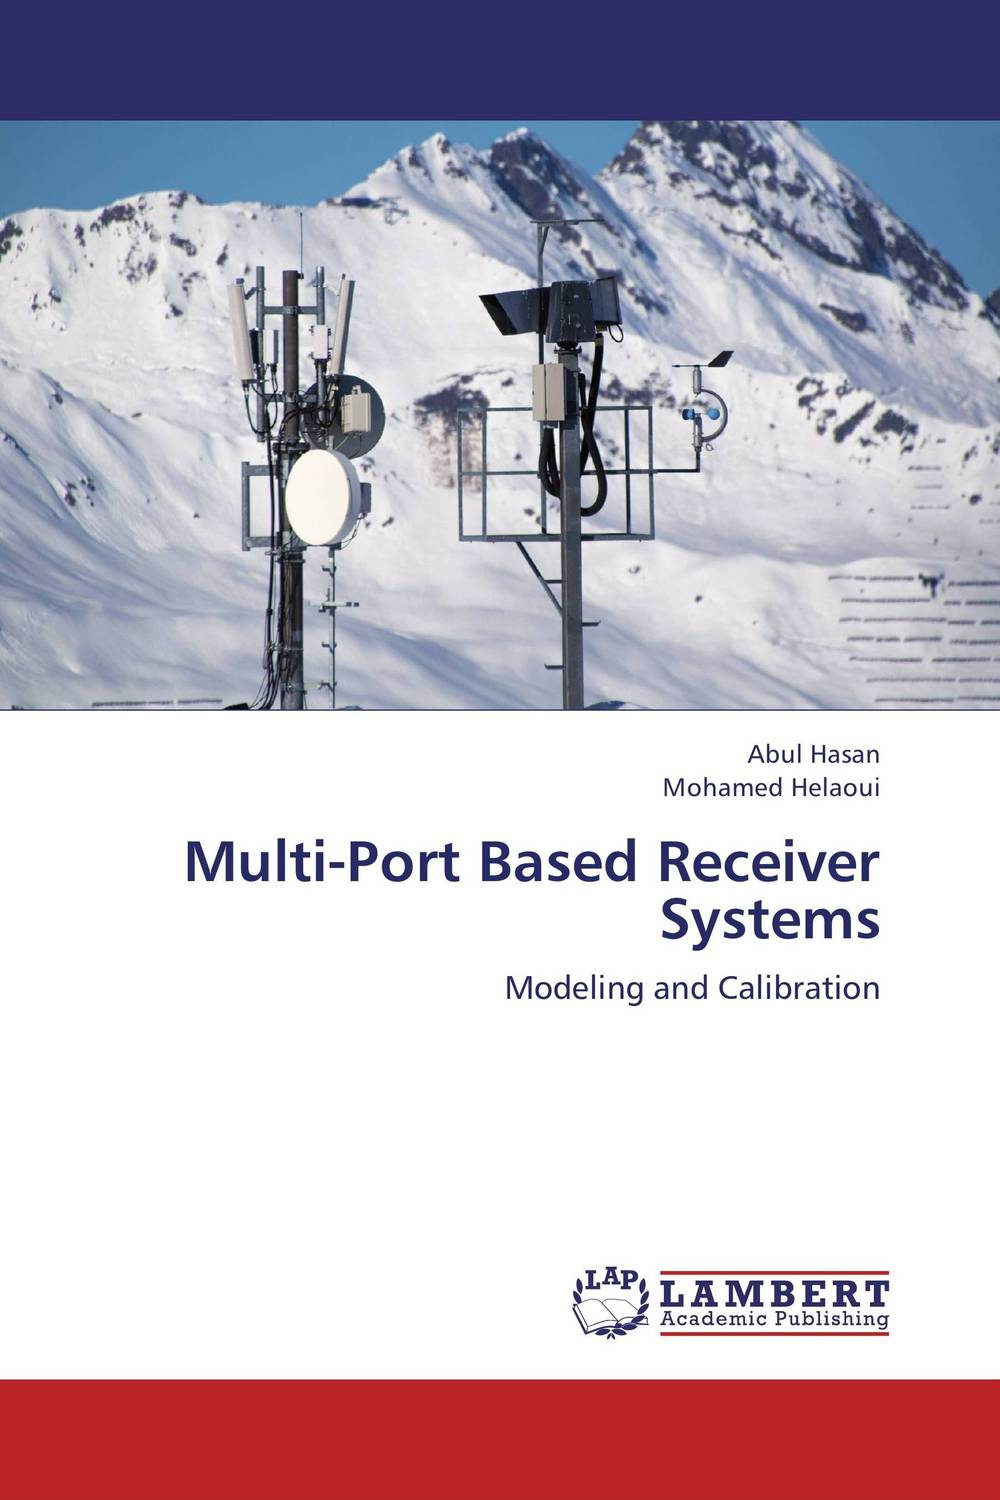 Multi-Port Based Receiver Systems software architecture and system requirements